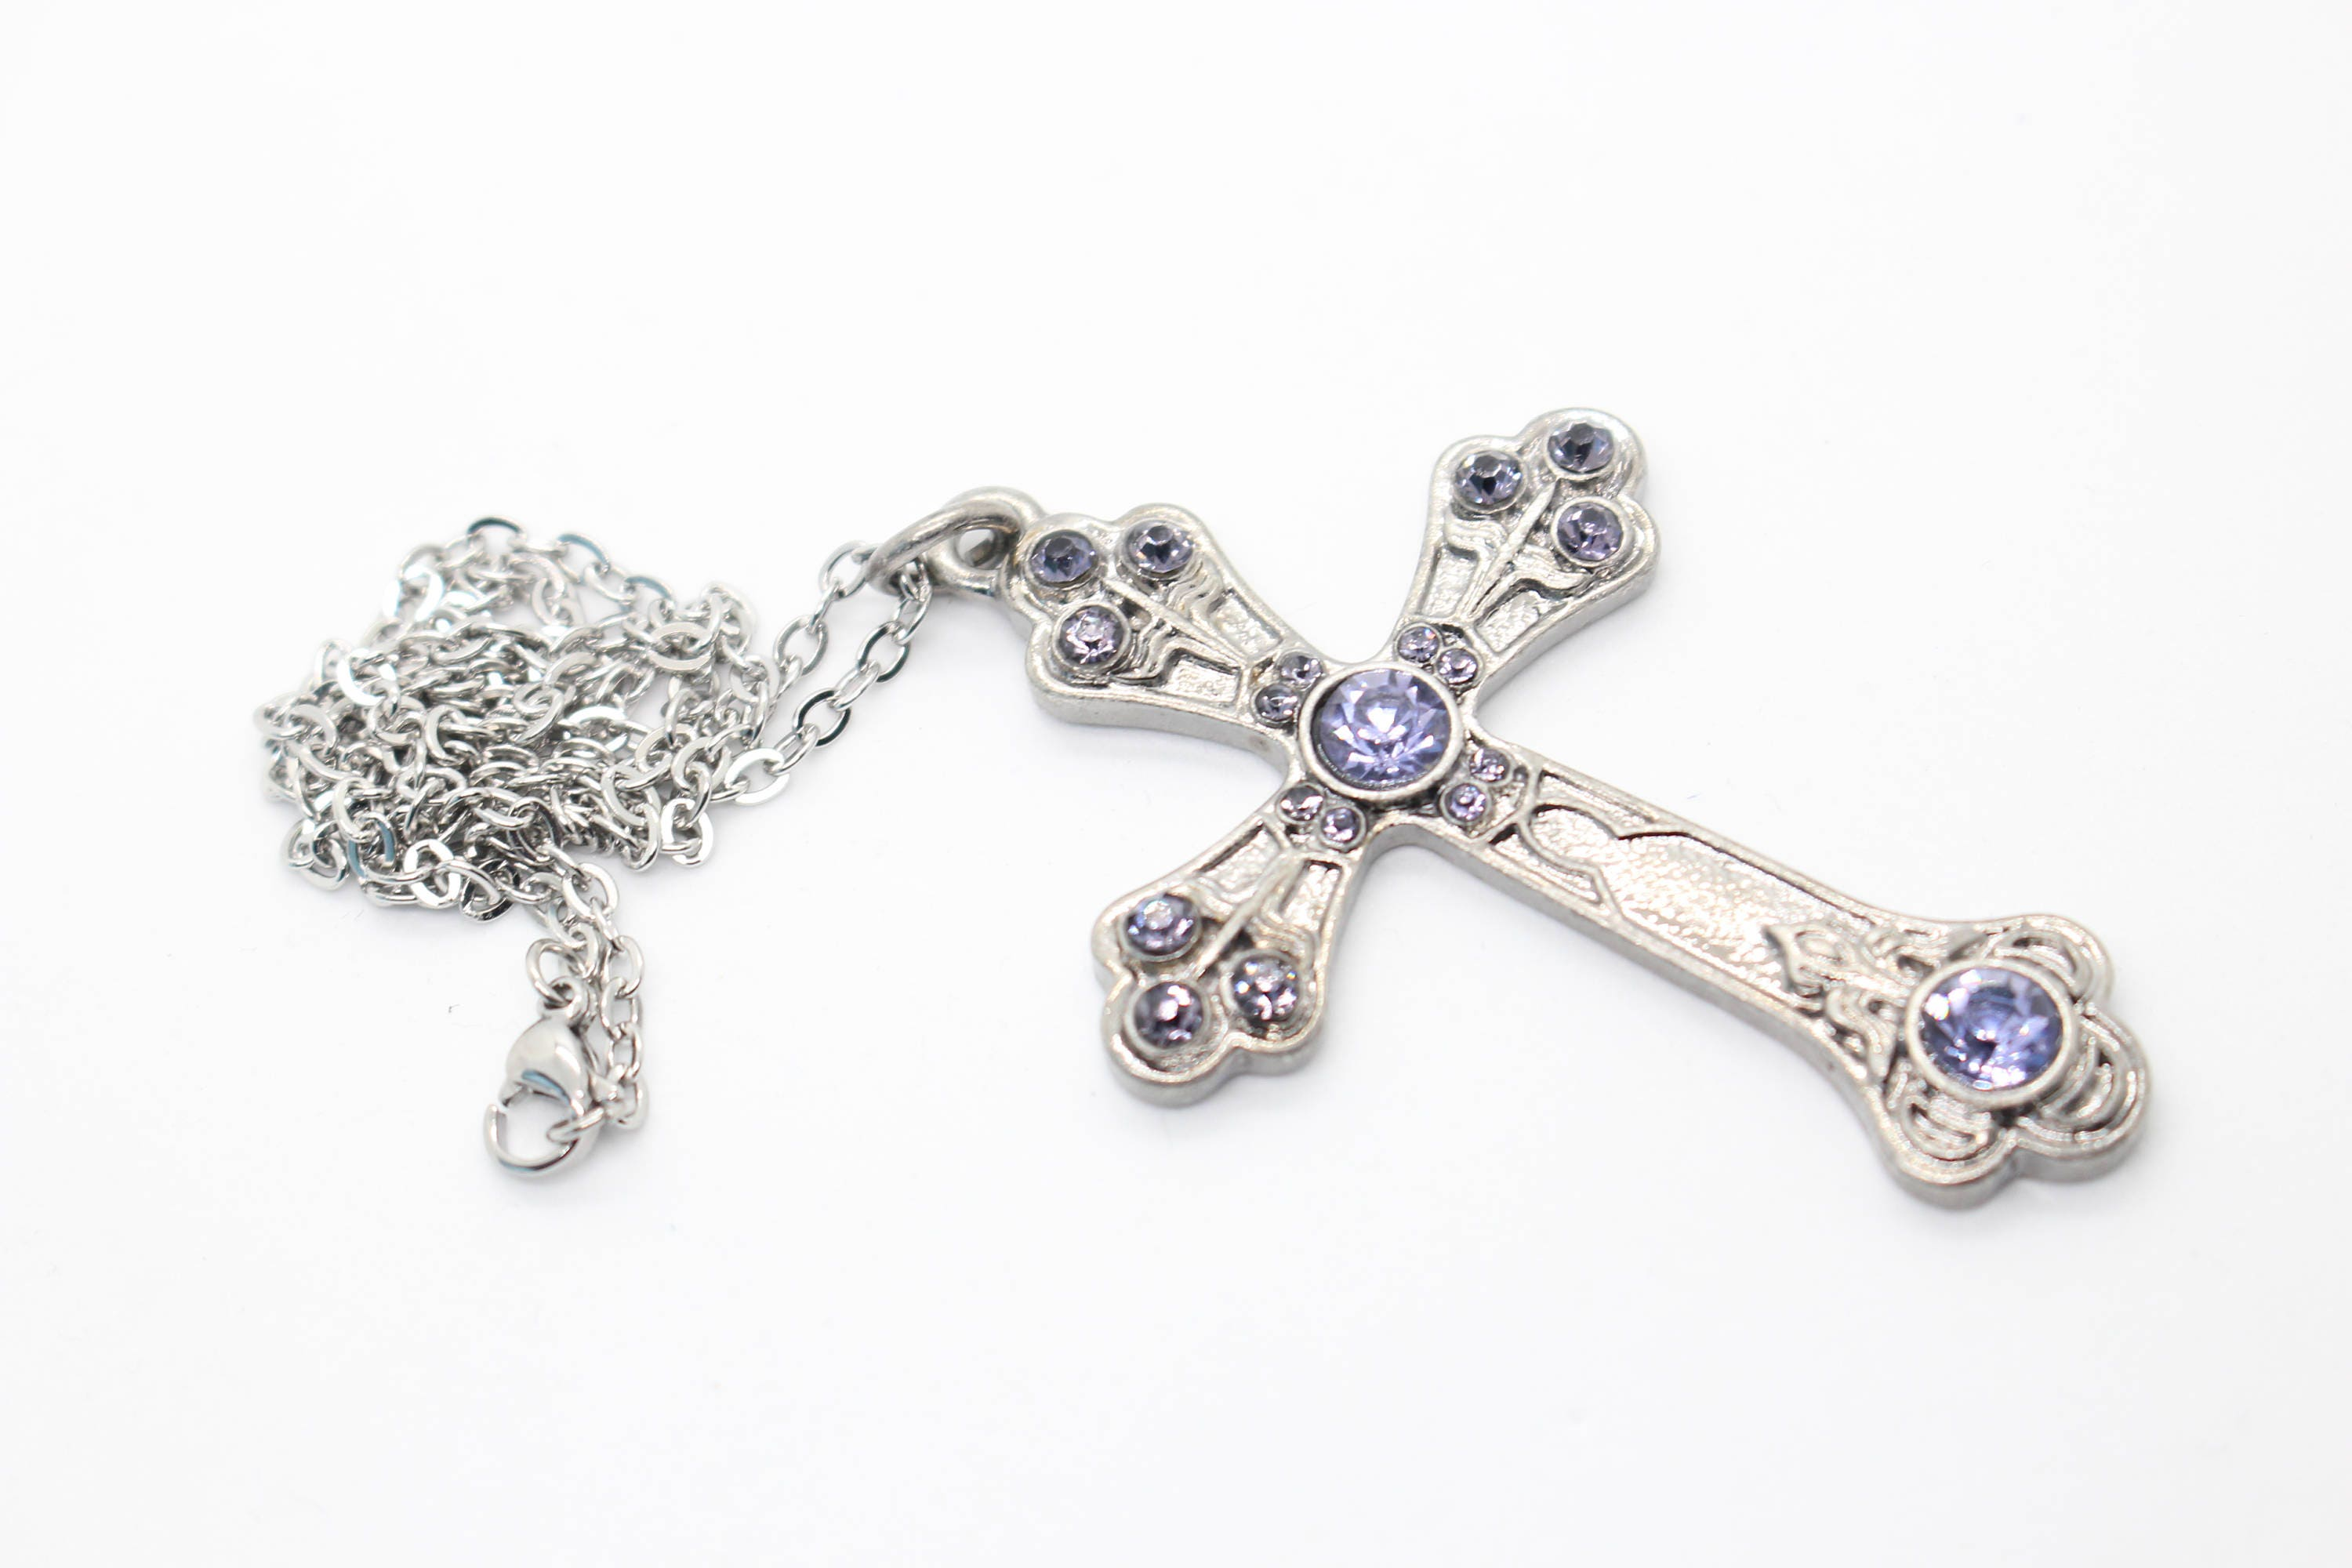 Silver cross pendant large cross necklace large cross pendant silver cross pendant large cross necklace large cross pendant silver cross necklace purple cross purple gem necklace cross jewelry mozeypictures Image collections